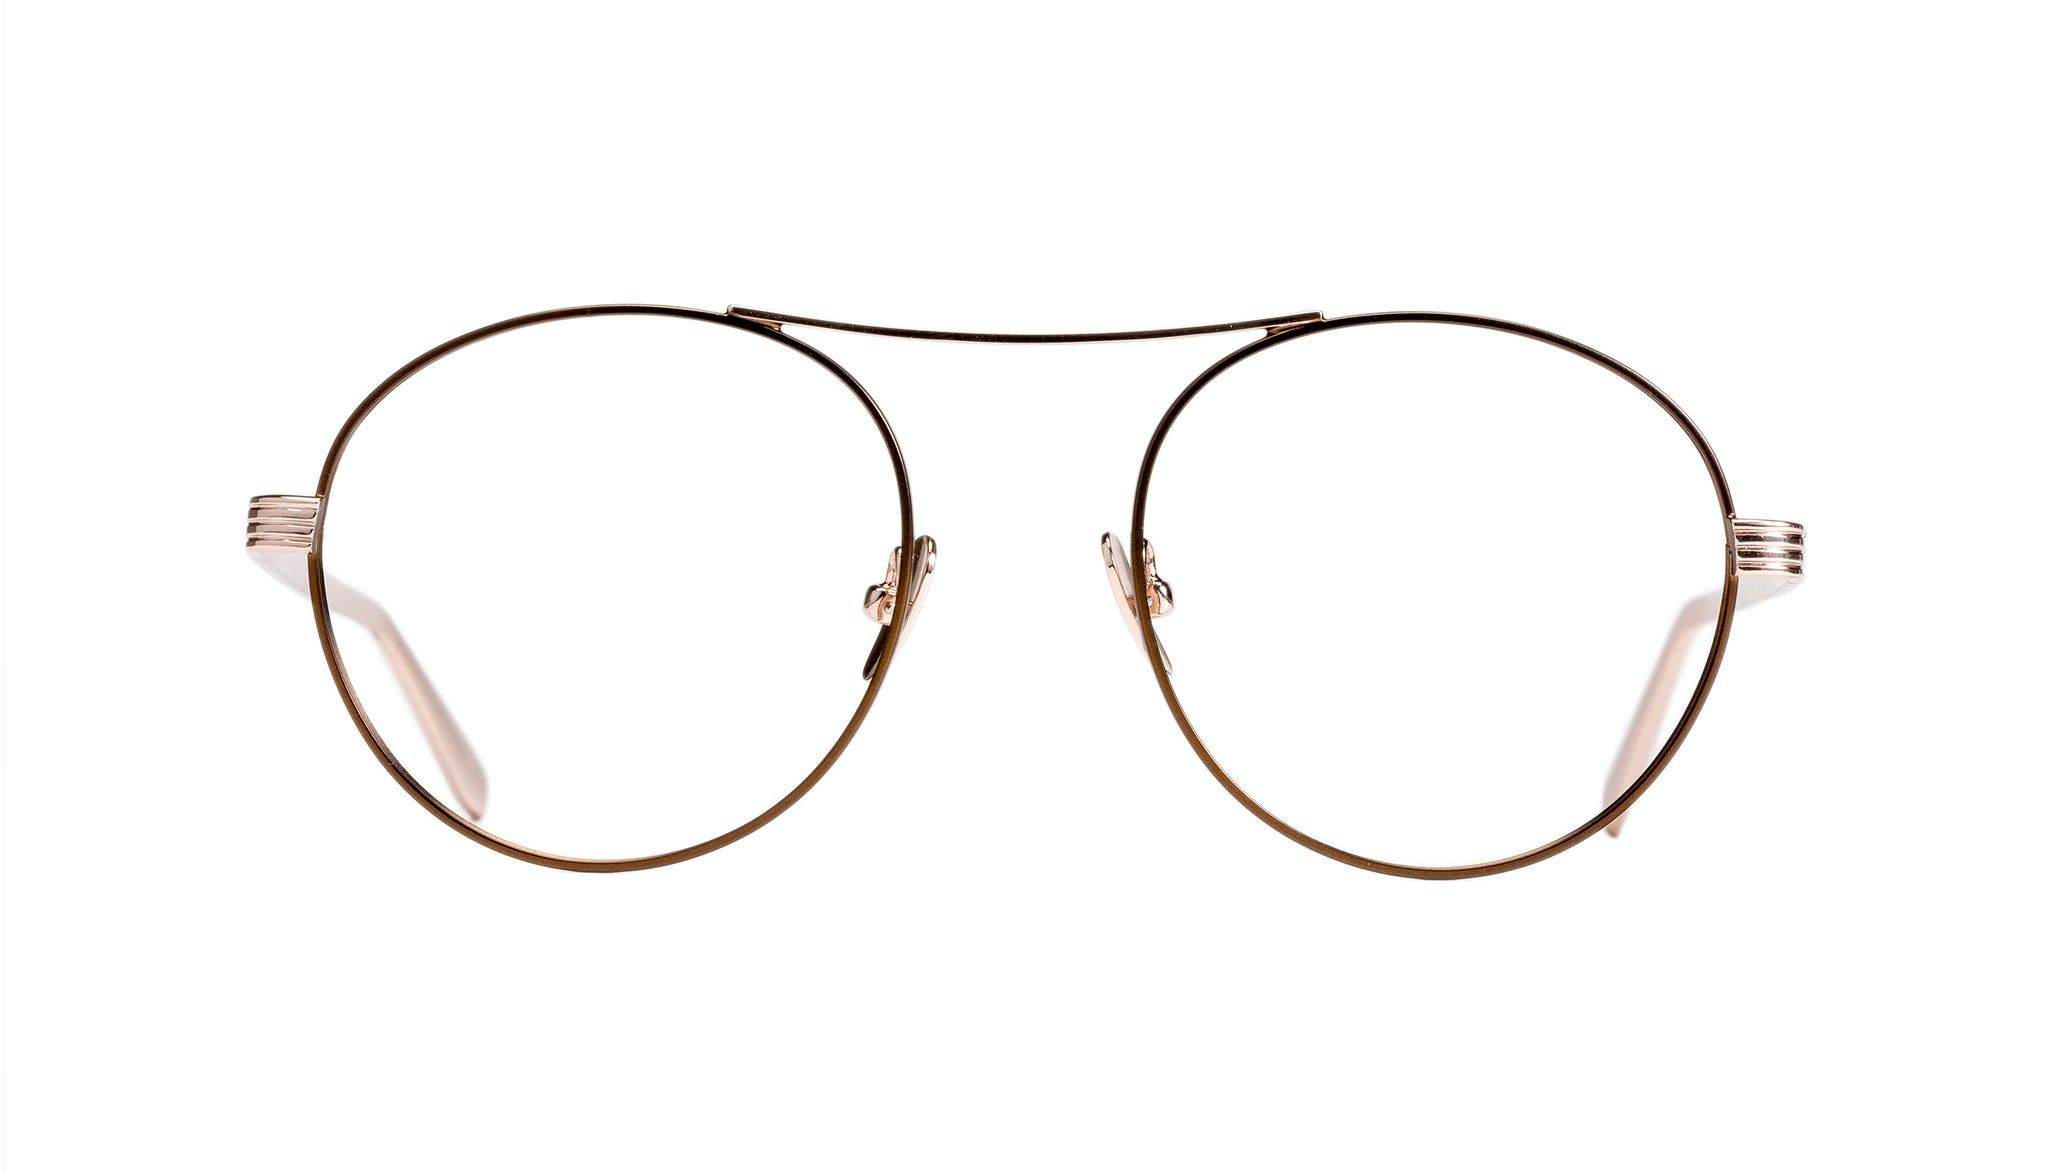 Affordable Fashion Glasses Round Eyeglasses Women Prize Golden Lilac Front